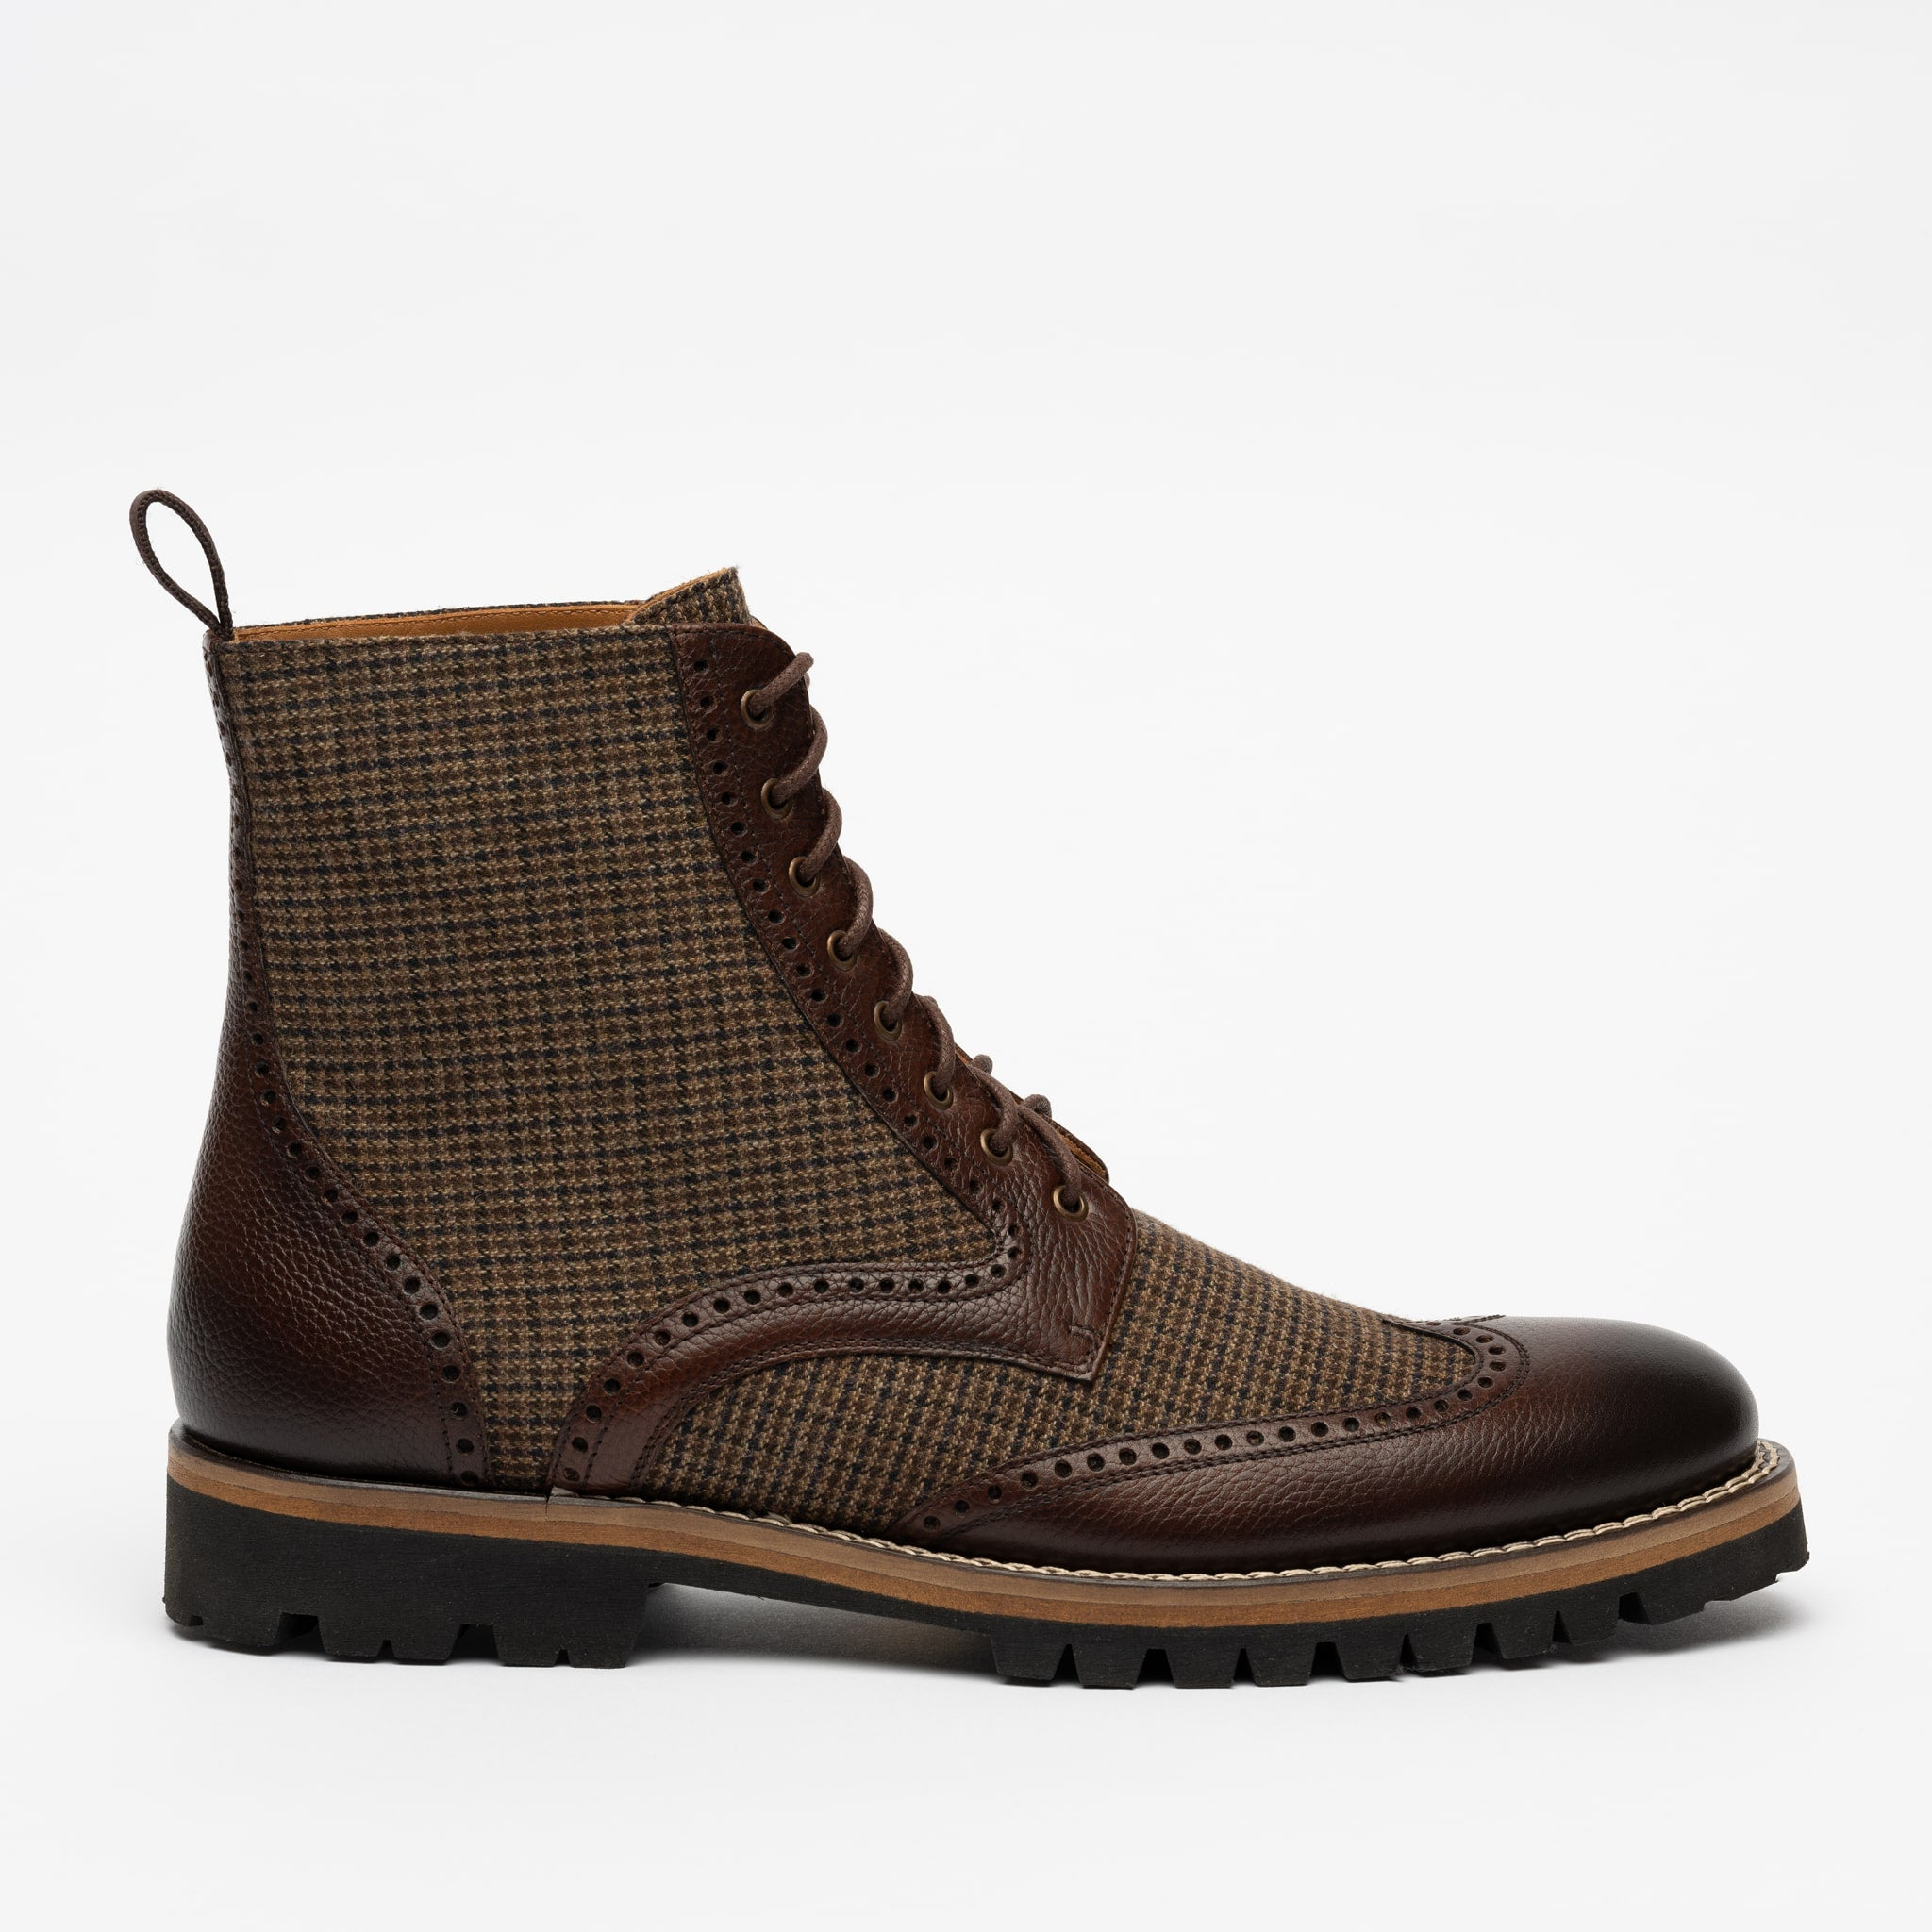 Holt Boot in Espresso side view